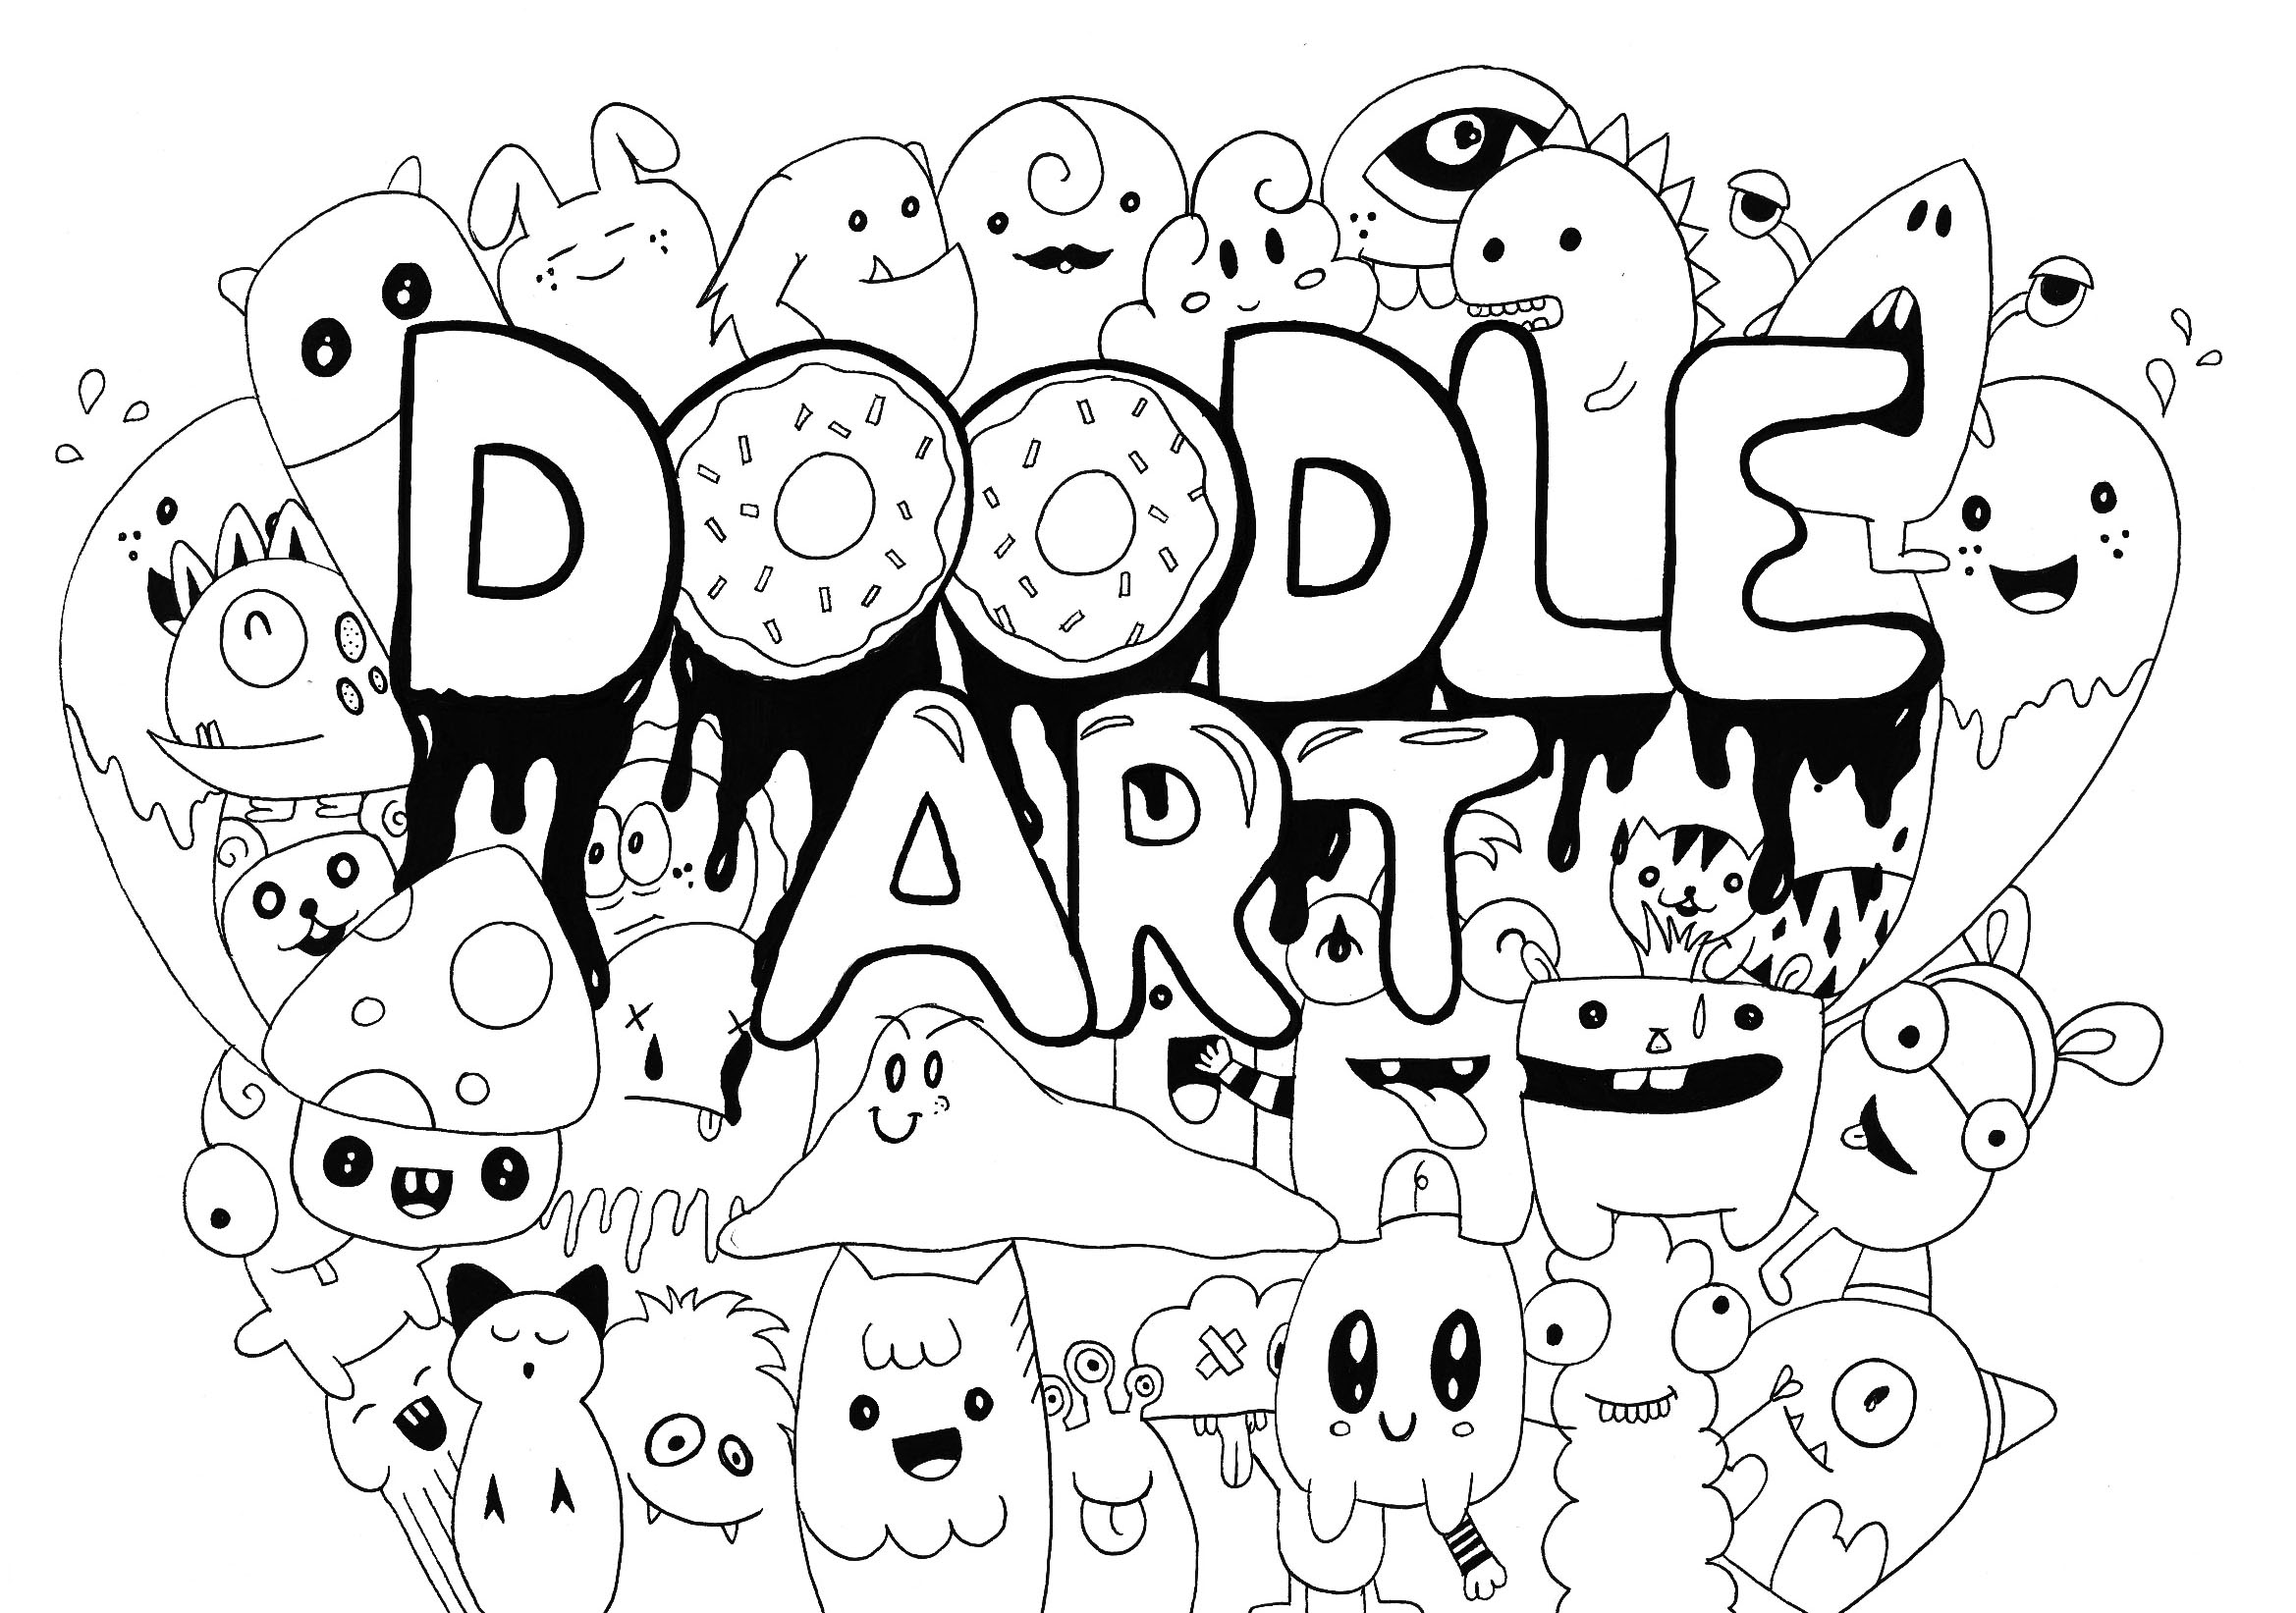 Doodling Doodle art Coloring pages for adults JustColor